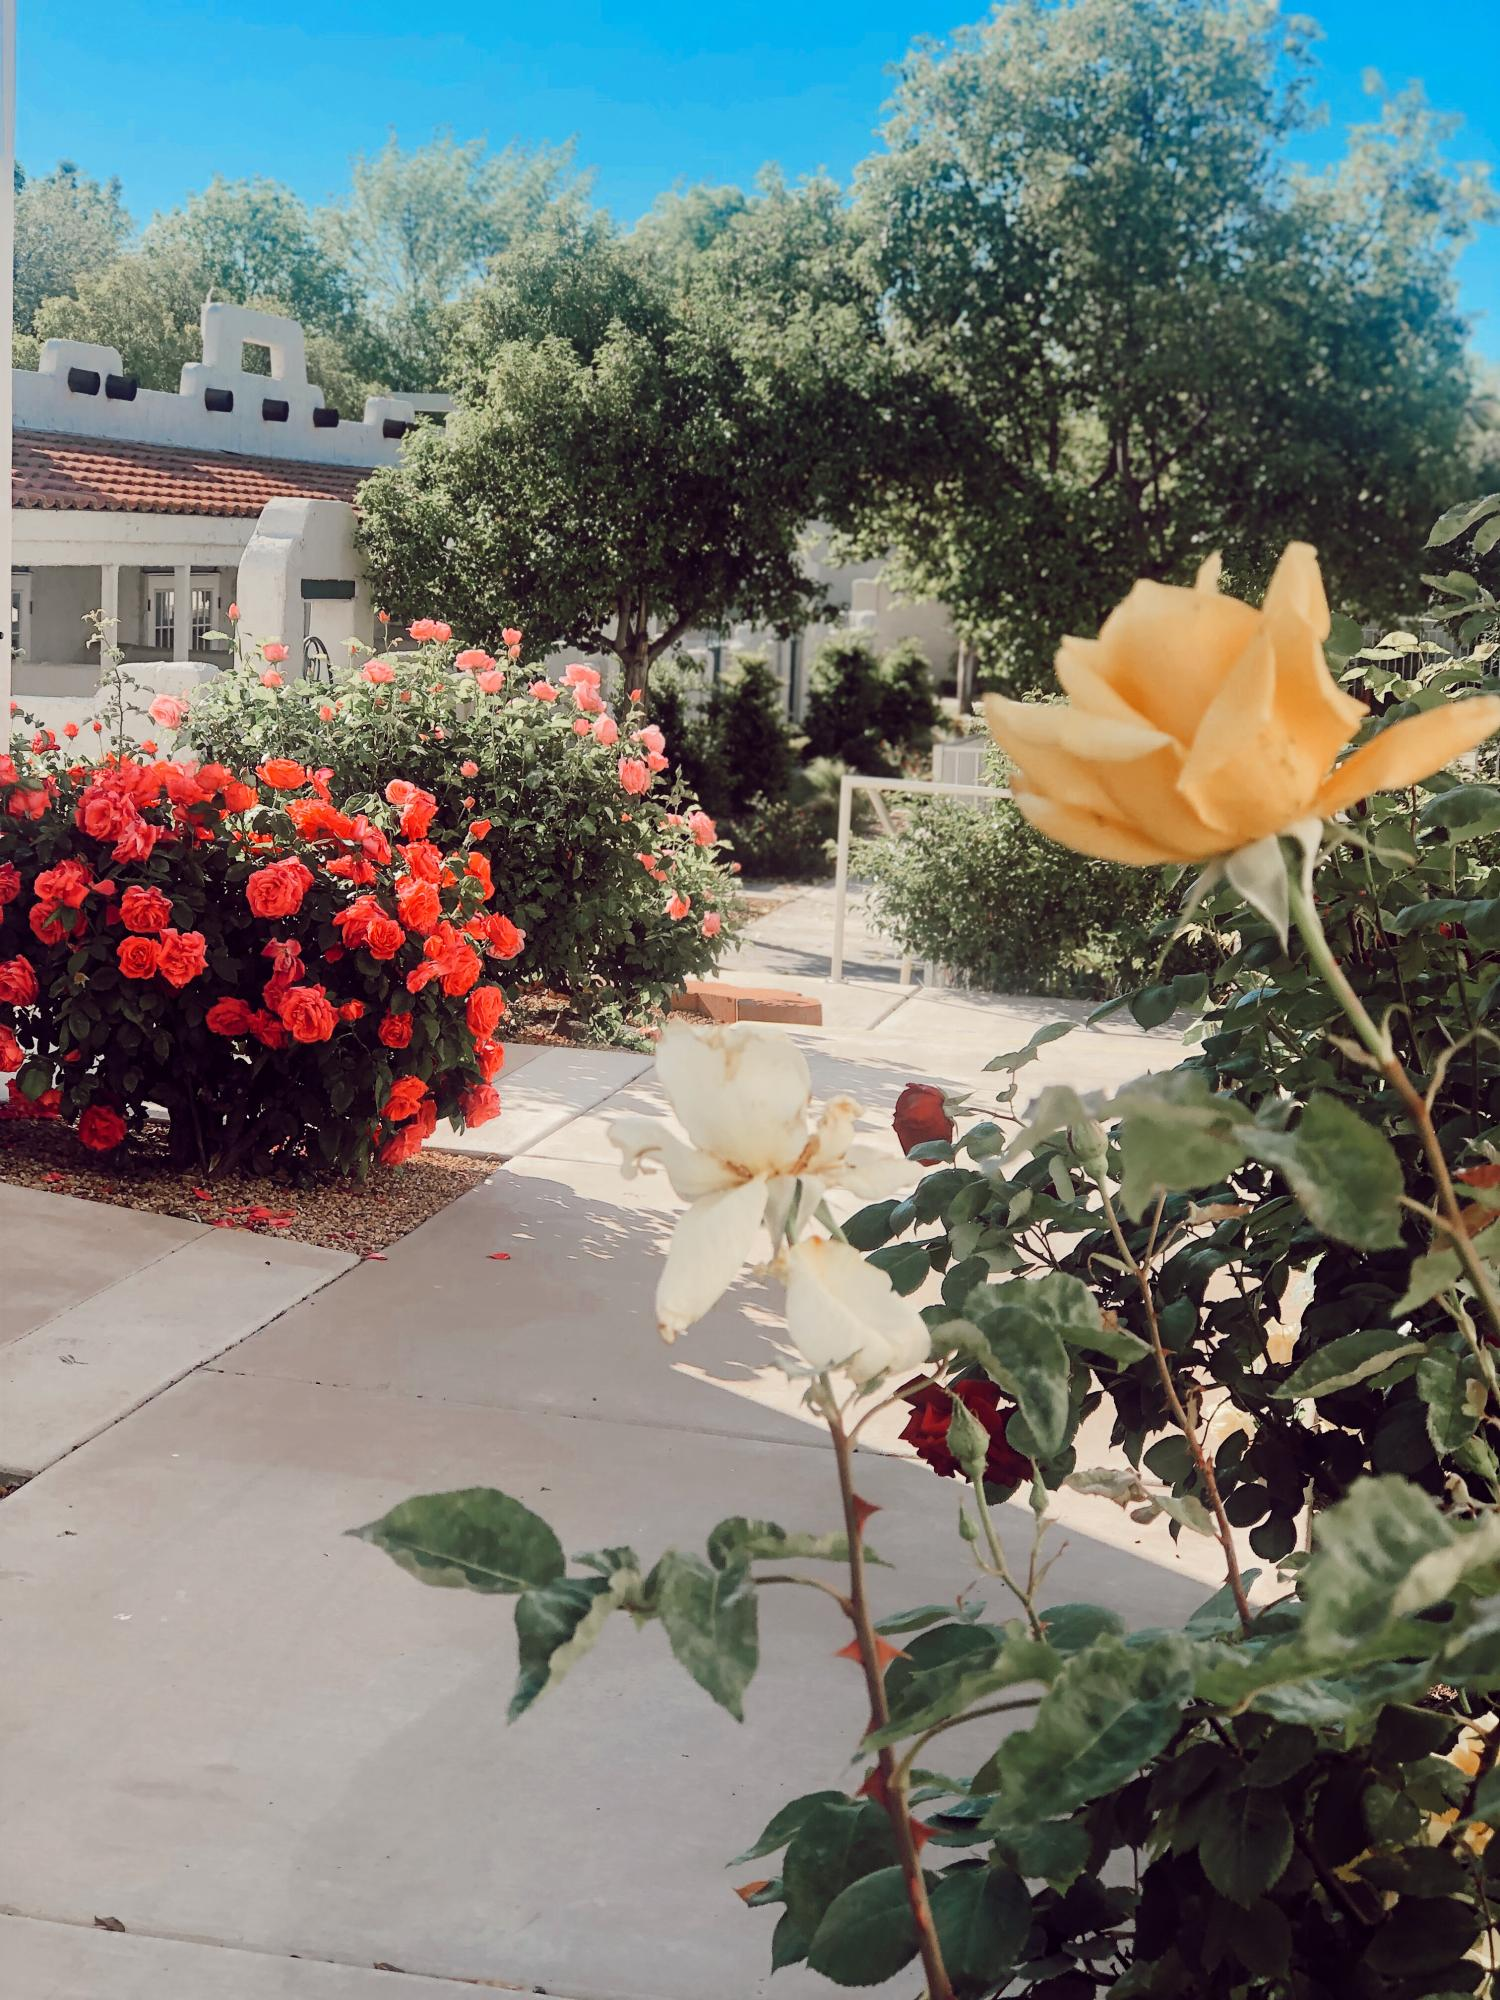 Welcome to Home Ownership at Amira Vacation Rental Resort! Turn Key Vacation Rental in the Heart of St George. Individually owned. Enjoy 2 pools, 1 hot tub, 4 Pickleball Courts, and Private Fitness Center. #2 is located POOL SIDE. Private Patio, Soaking Tub, Kitchenette, 2 TV\